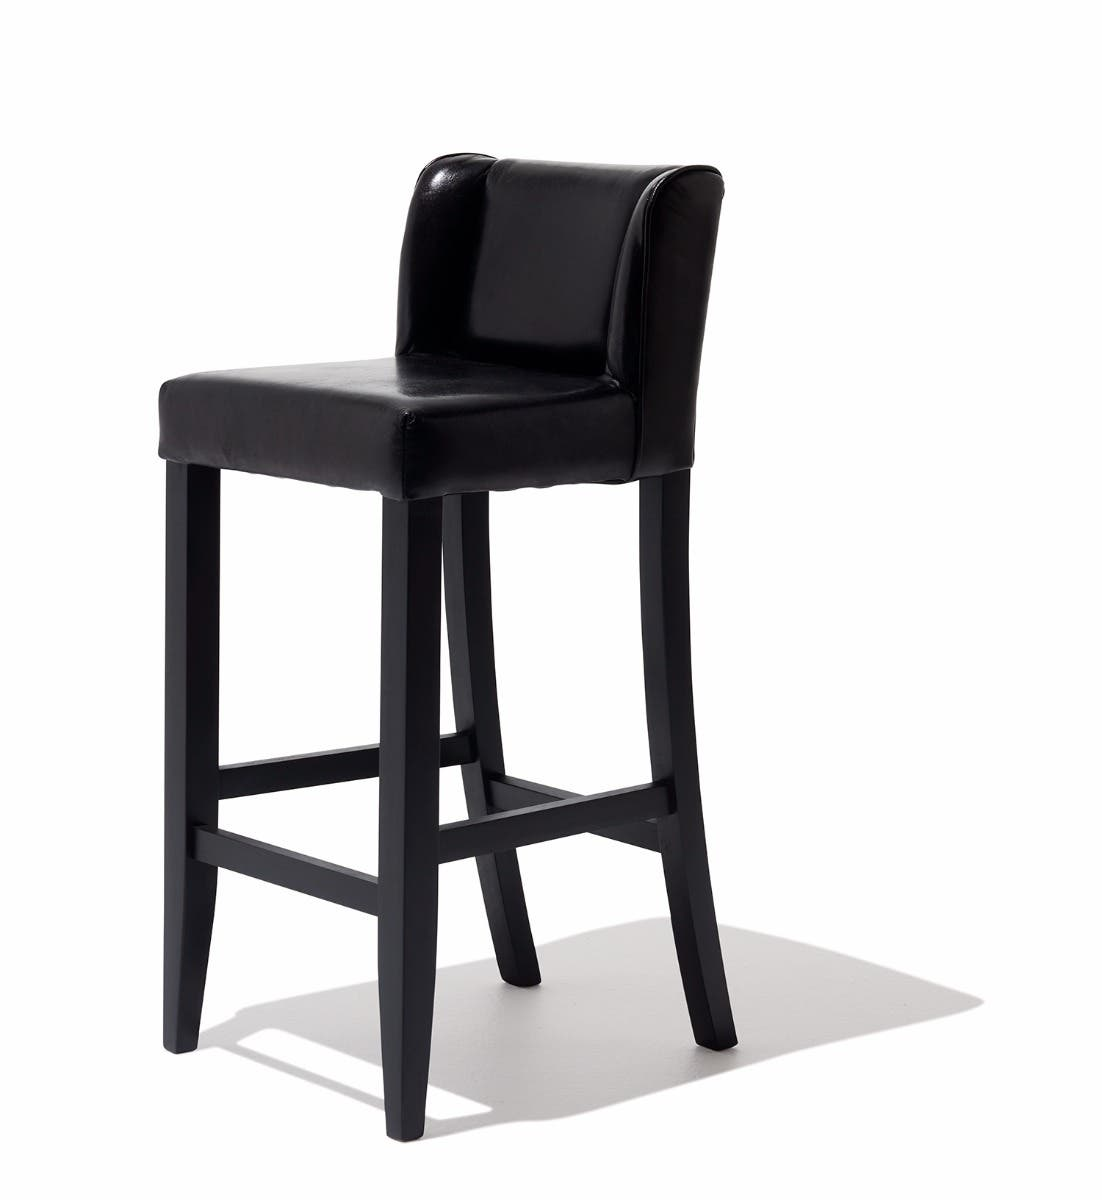 Madrid Bar Stool  sc 1 st  Industry West & Industrial Mid-Century and Modern Bar and Counter Stools for Home ... islam-shia.org